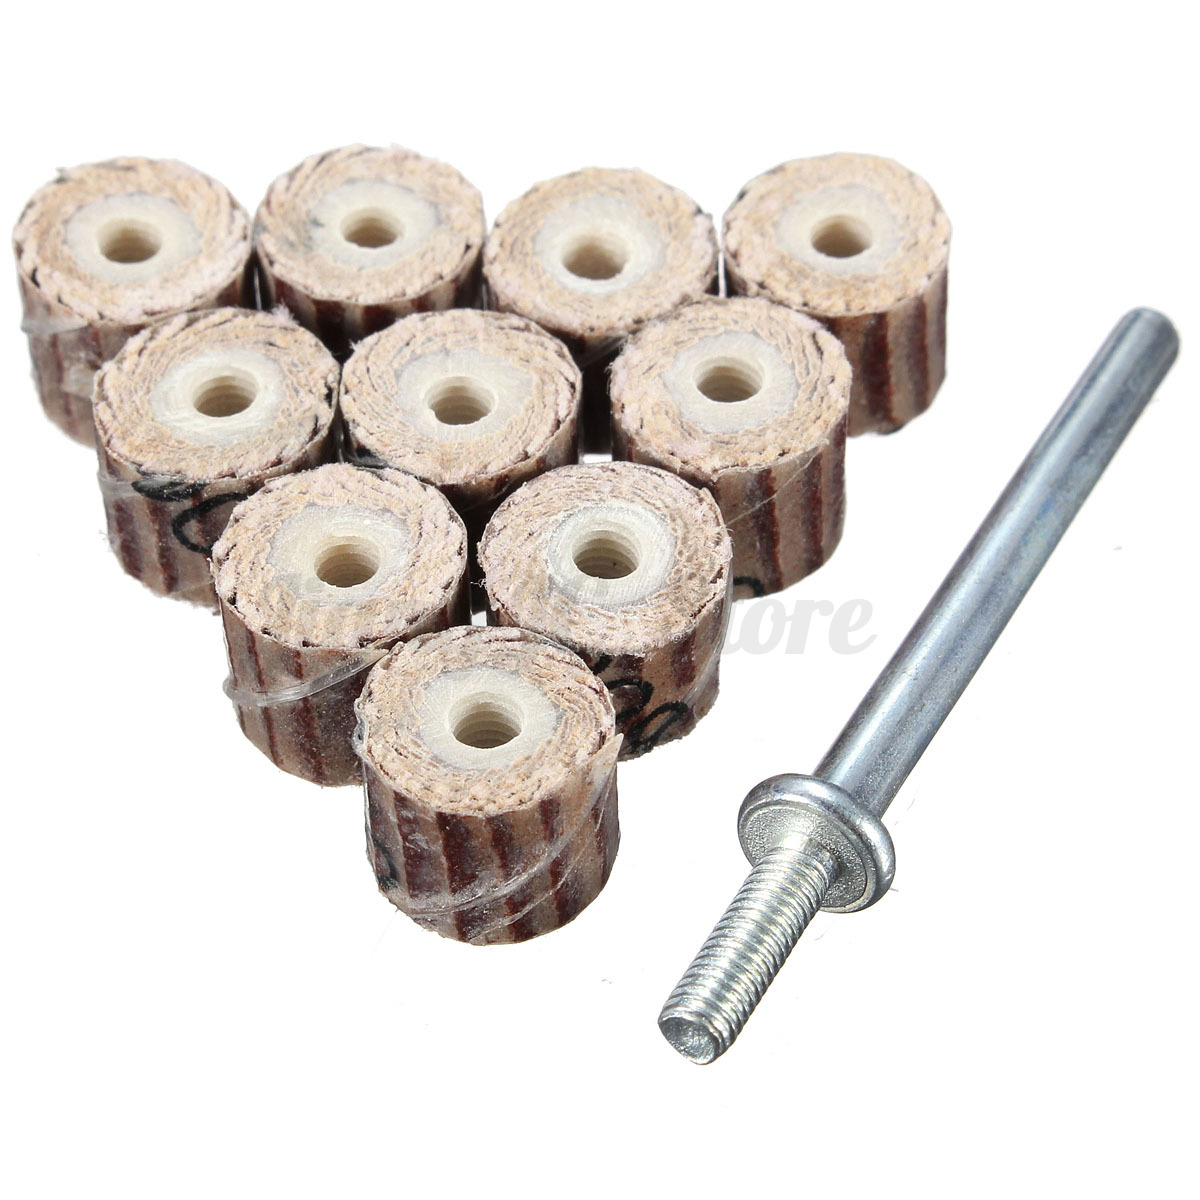 10pcs flap wheel disc shaft abrasive sanding drill polish rotary new ebay. Black Bedroom Furniture Sets. Home Design Ideas